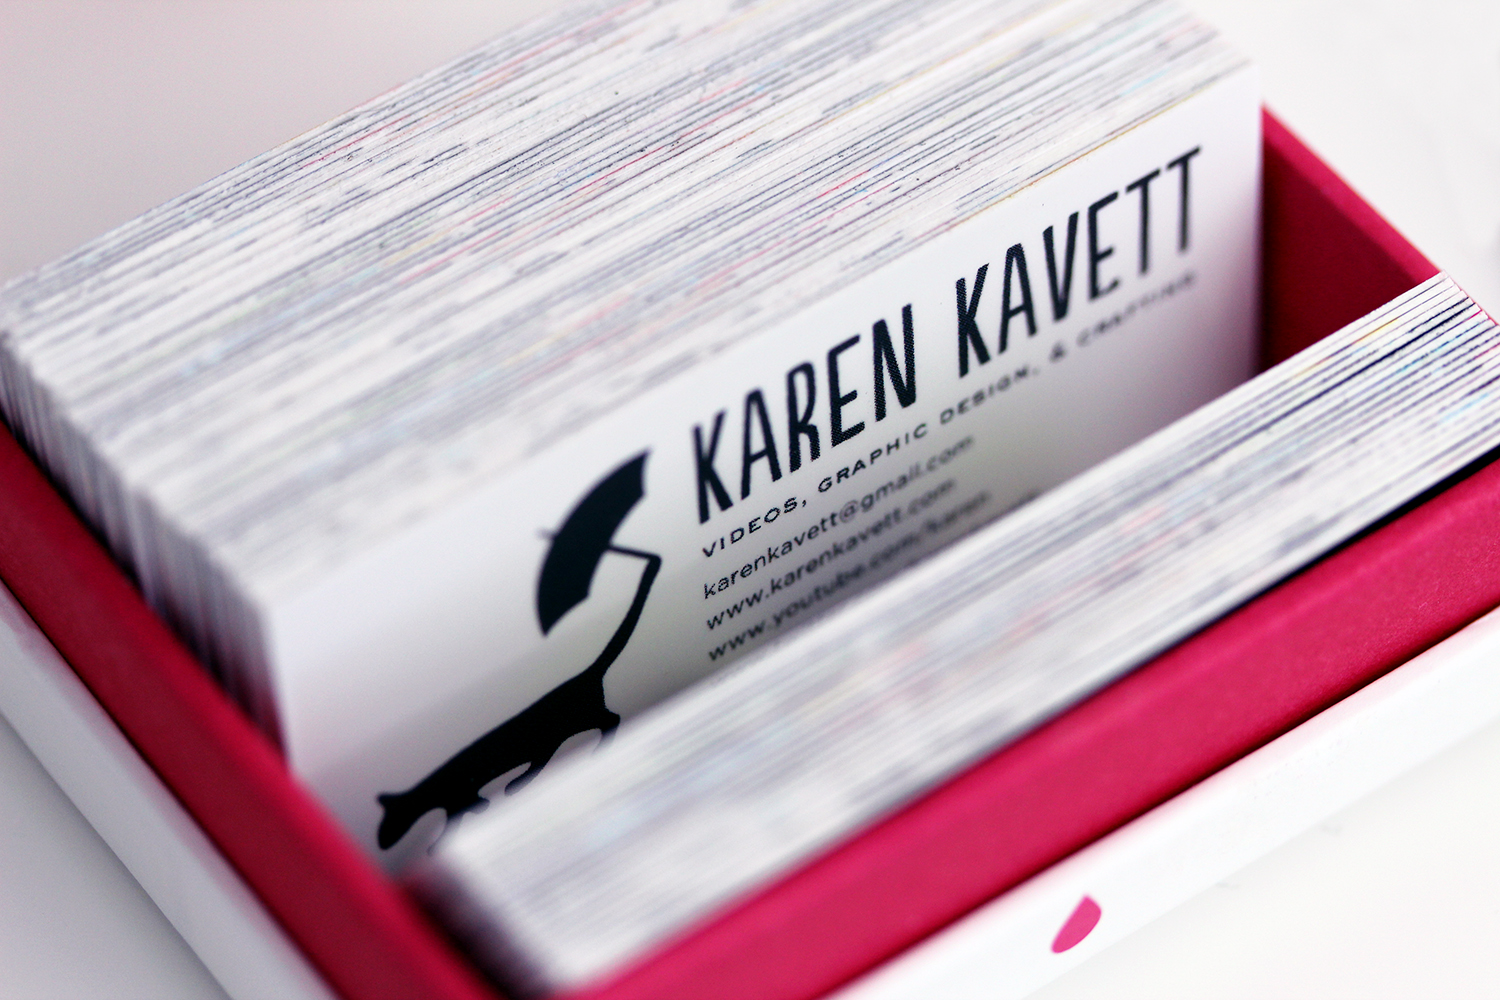 New business cards karen kavett new business cards magicingreecefo Image collections